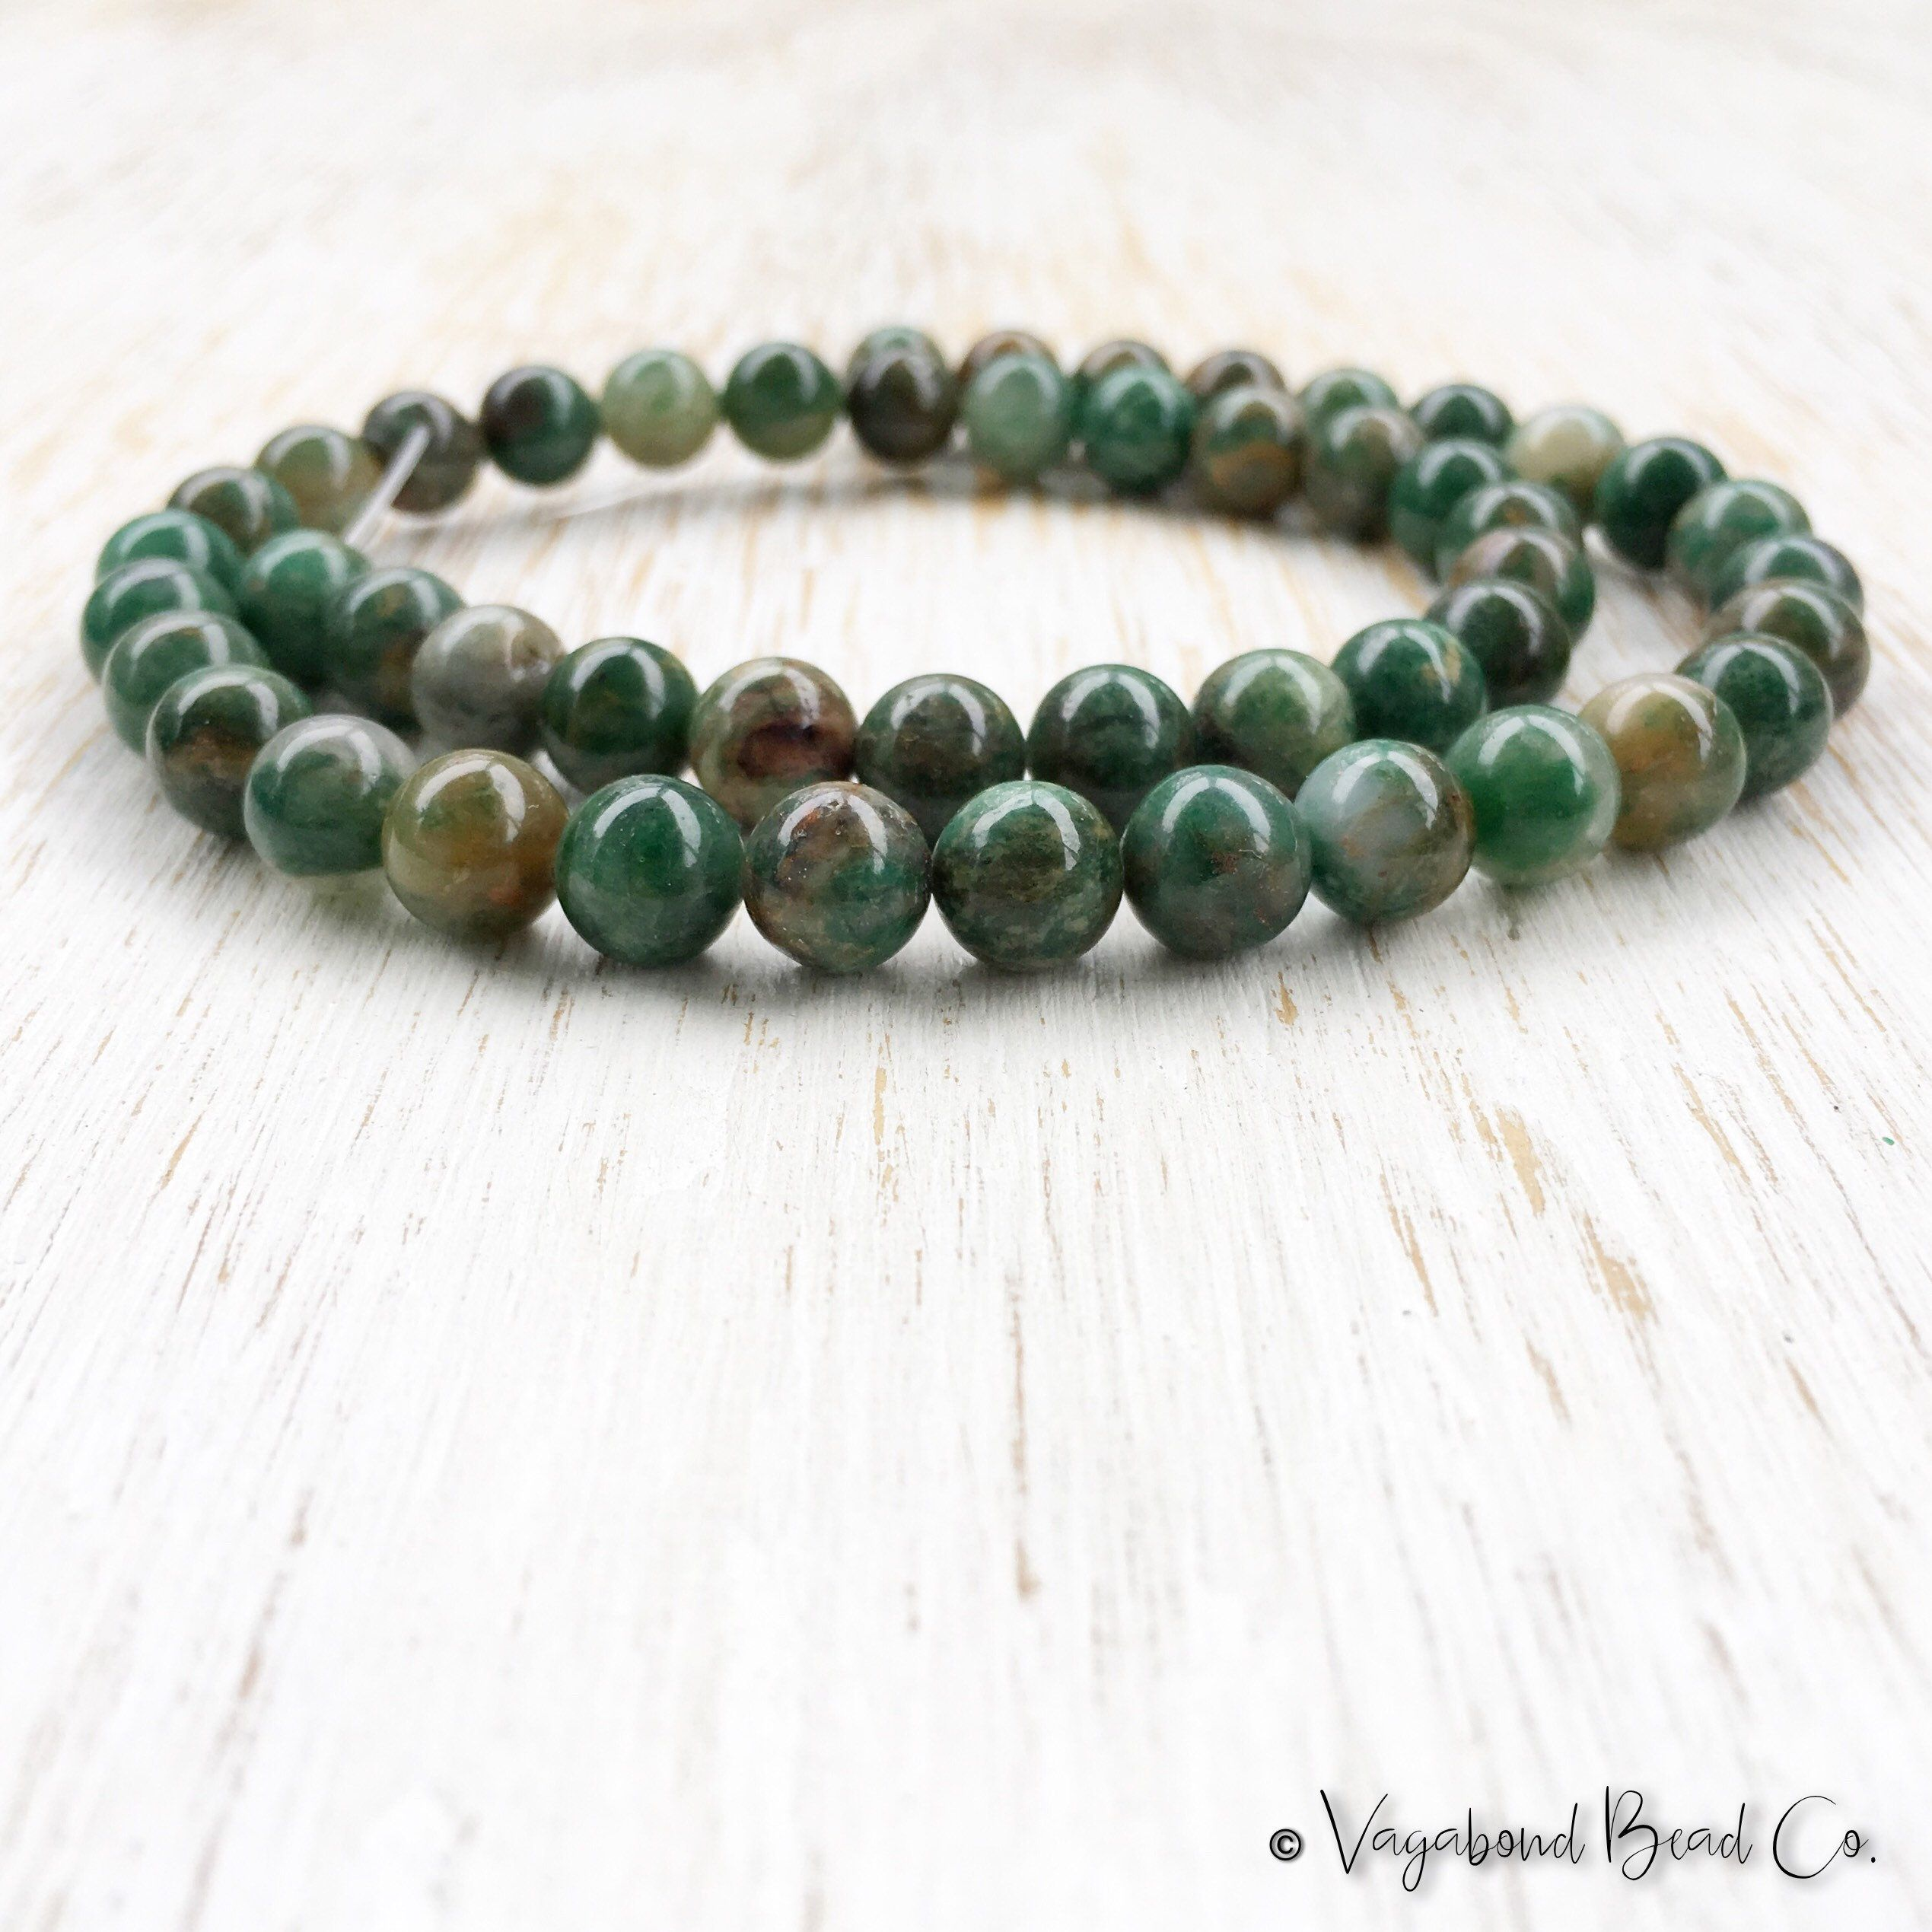 necklace mala om tigers jade p eye green charm il fullxfull beads mantra jewelry yoga zen bead